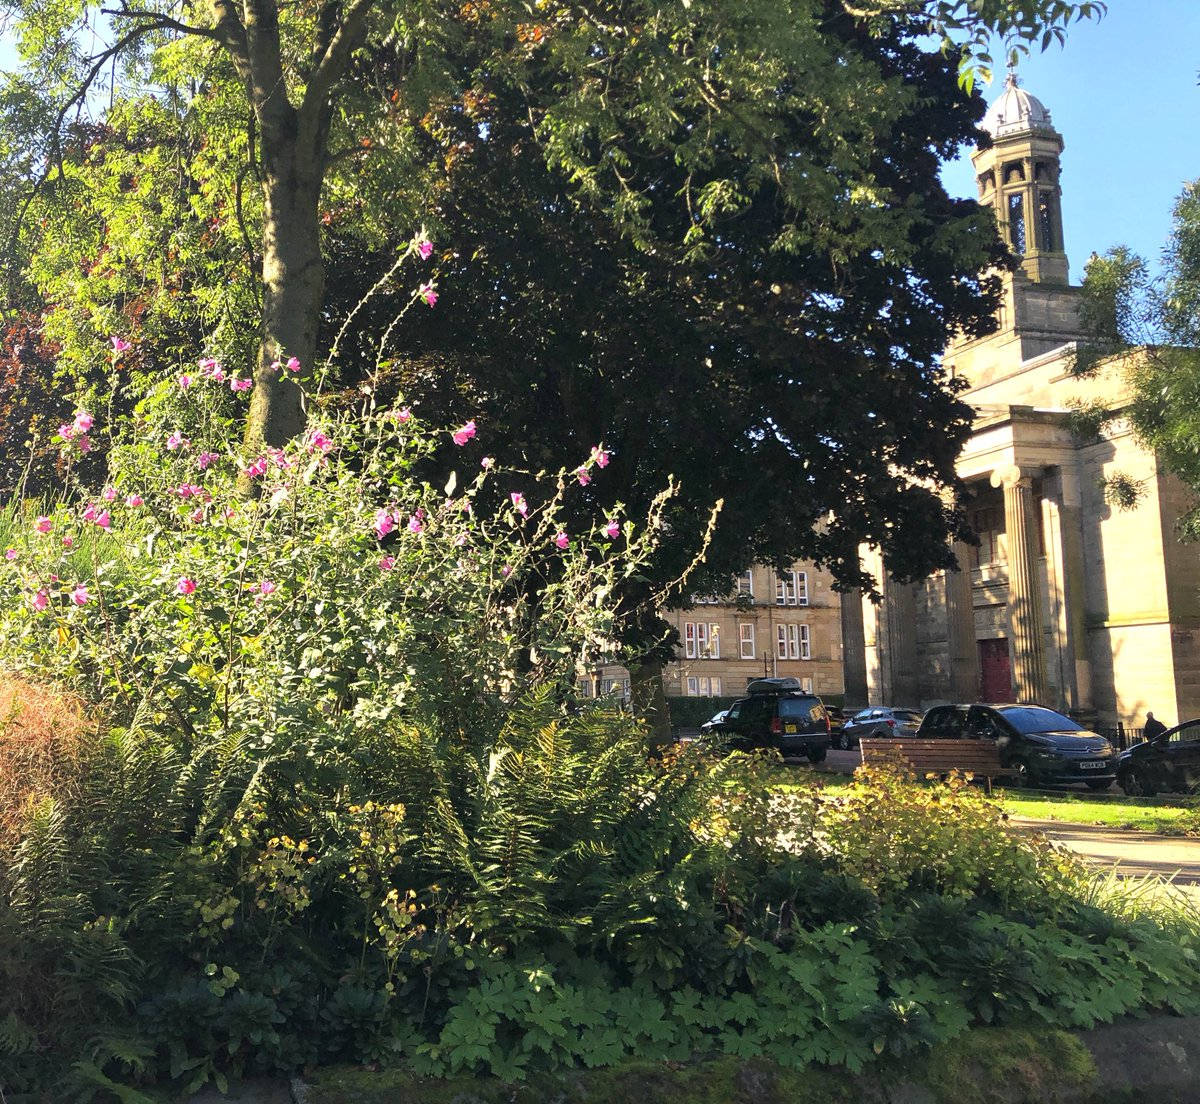 Community garden at Derby Street #Glasgow looking stunning today. A wee hidden gem just outside #Kelvingrovepark #Scotland #Community #Wellbeing #WestEnd #Architecture https://t.co/TDFp92GGK8